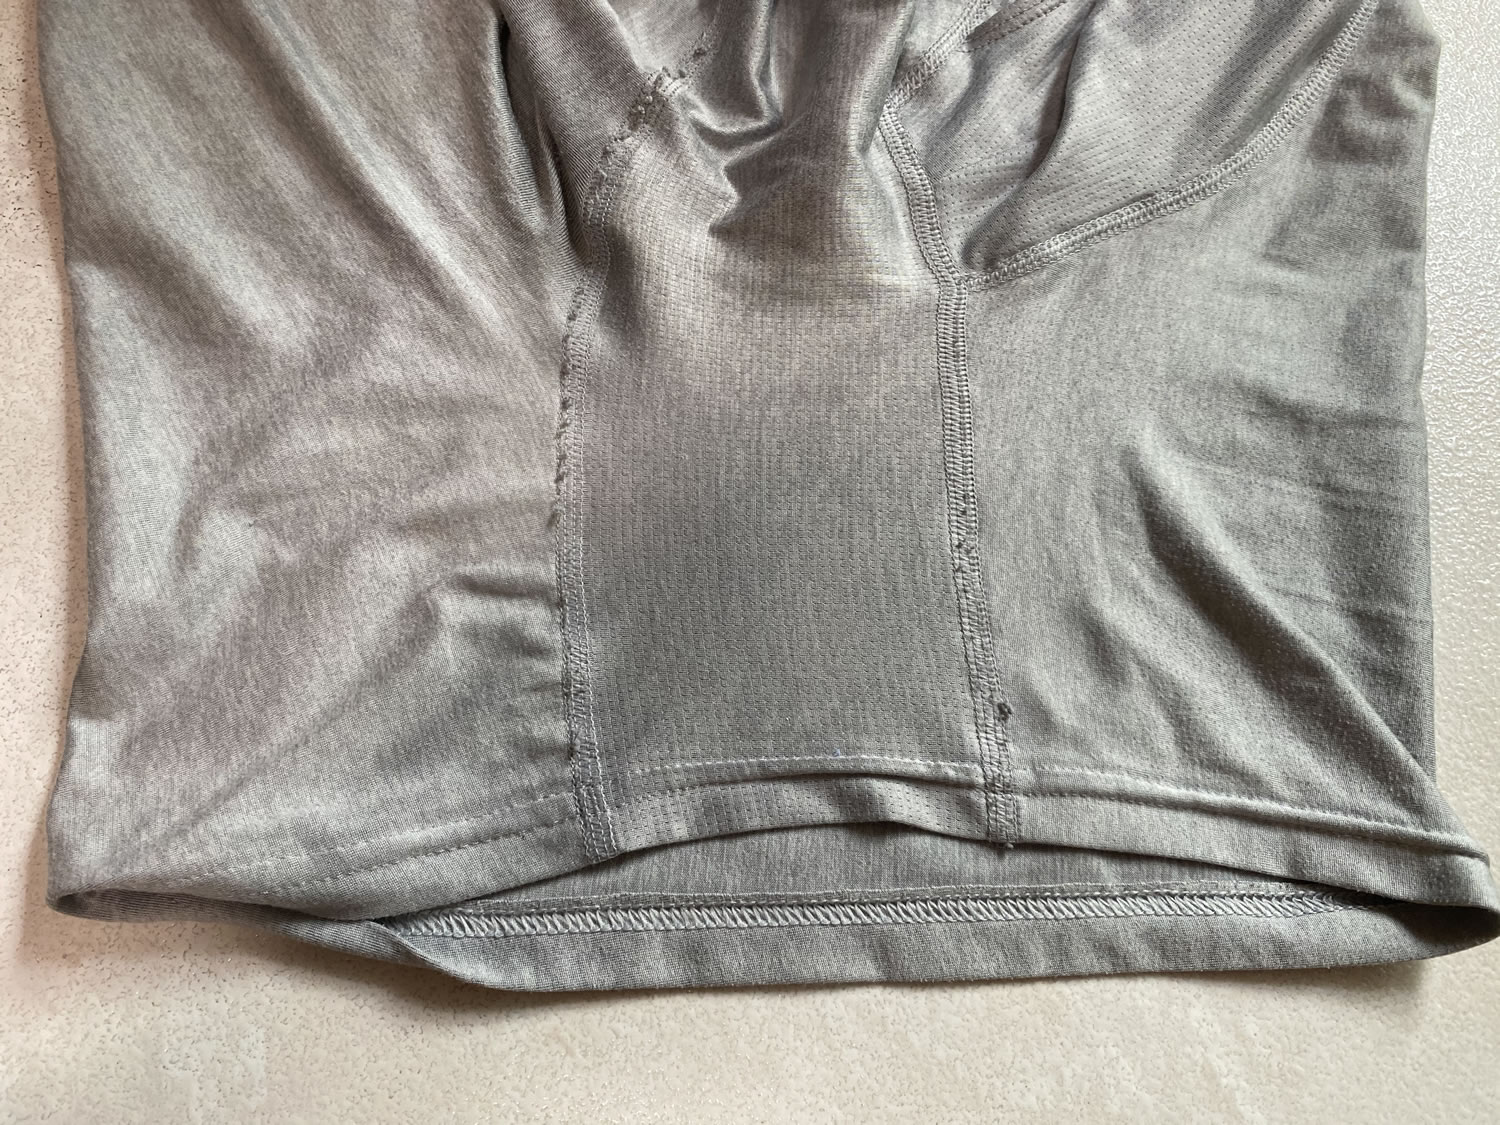 Prevent Thigh Abrasion, Boxers with No Middle Seams